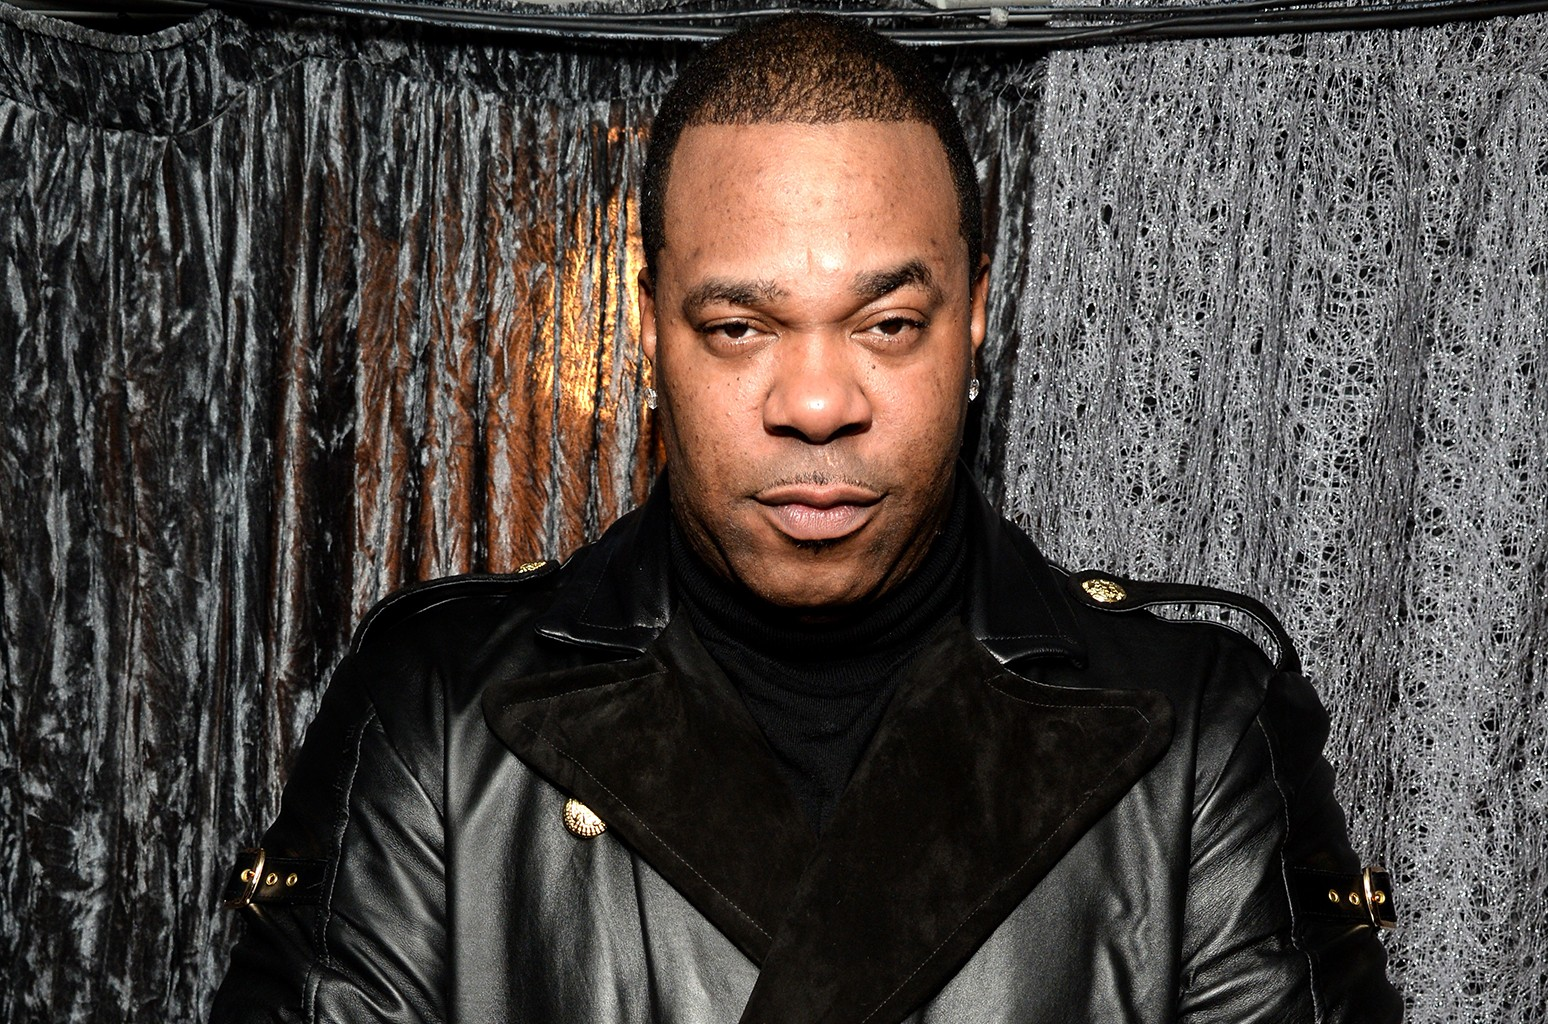 Busta Rhymes Shows Off Dramatic Weight Loss, Impressive New Physique: 'Don't Ever Give Up on Yourself'